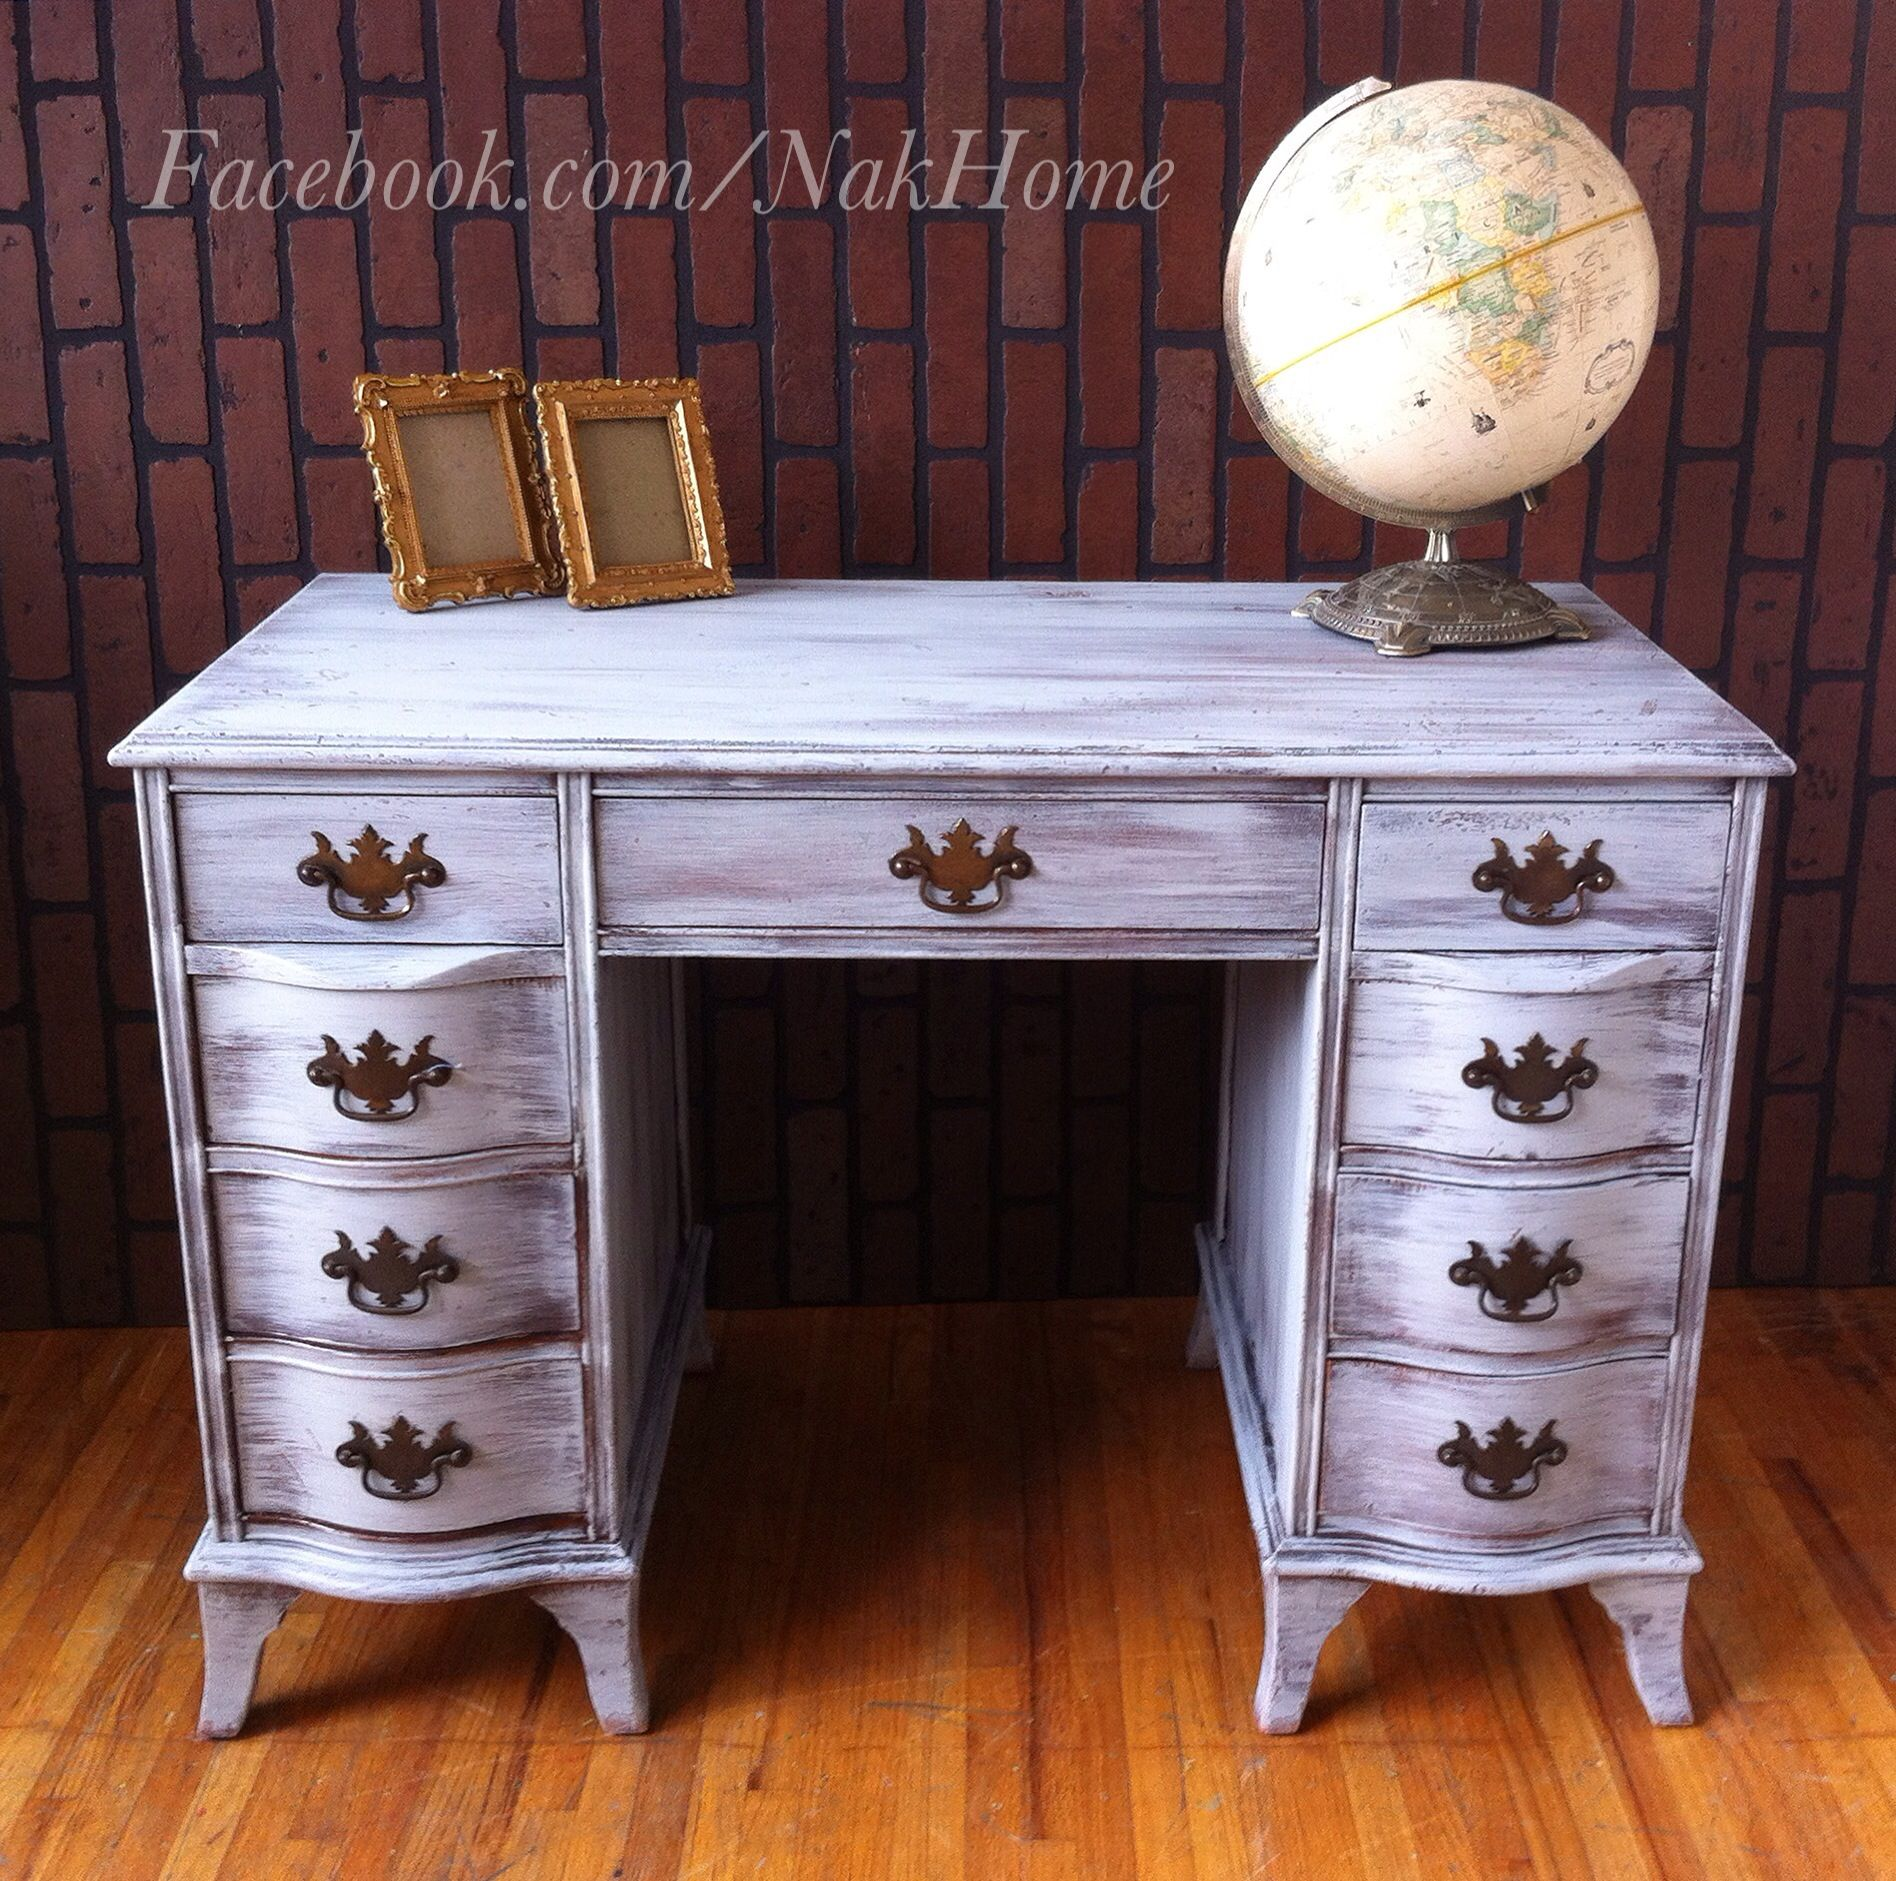 Furniture makeover shabby chic gray antique vintage vanity desk hand painted  with homemade diy chalk paint. Furniture makeover shabby chic gray antique vintage vanity desk